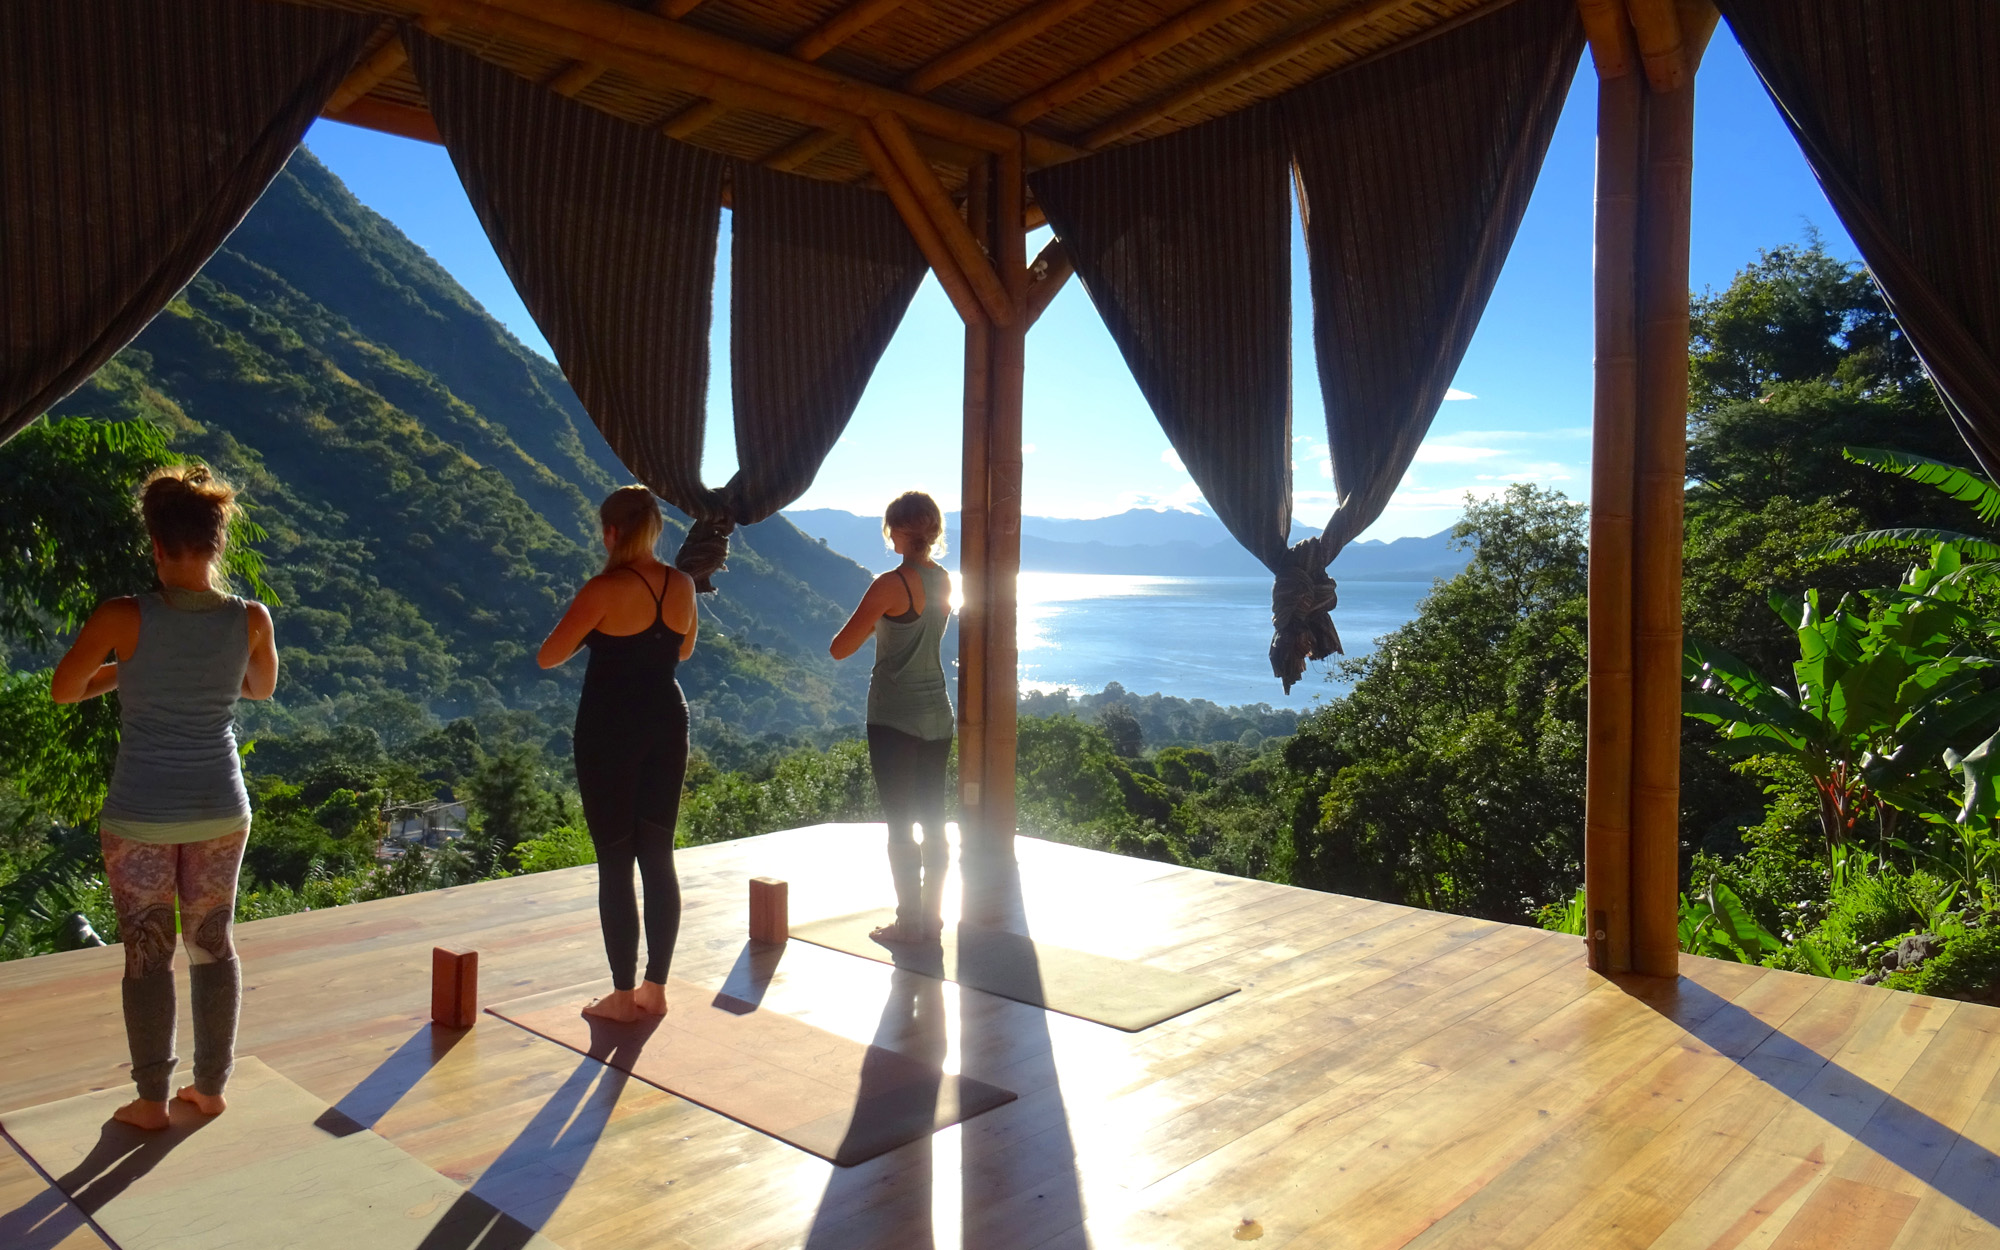 5_Yoga_deck_Bamboo_house.JPG